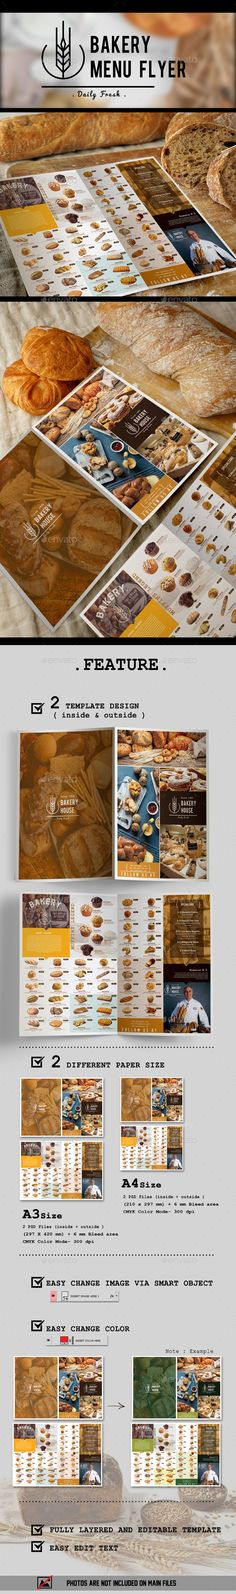 1000 images about hospitality marketing on pinterest for Bakery brochure template free